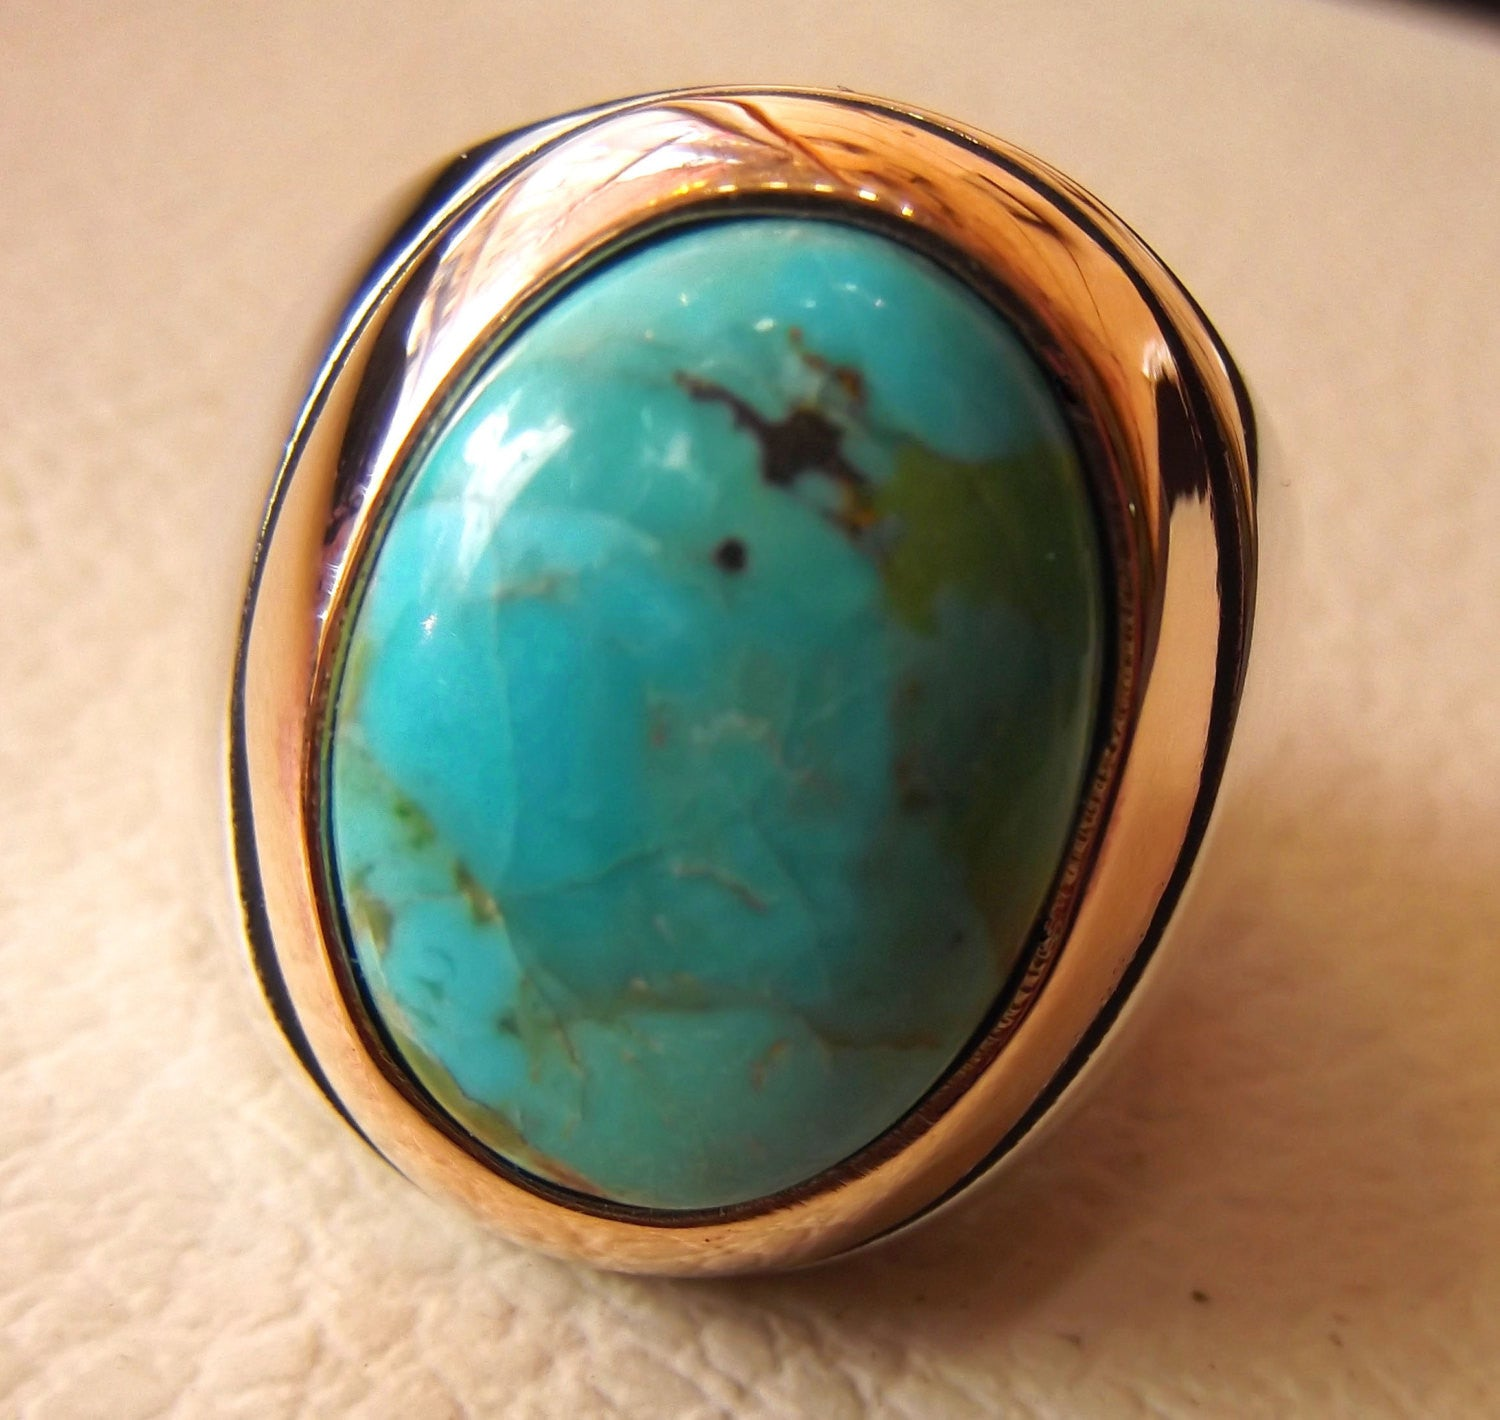 arizona turquoise best quality semi precious natural gemstone oval blue cabochon stone heavy ring sterling silver 925 bronze frame jewelry